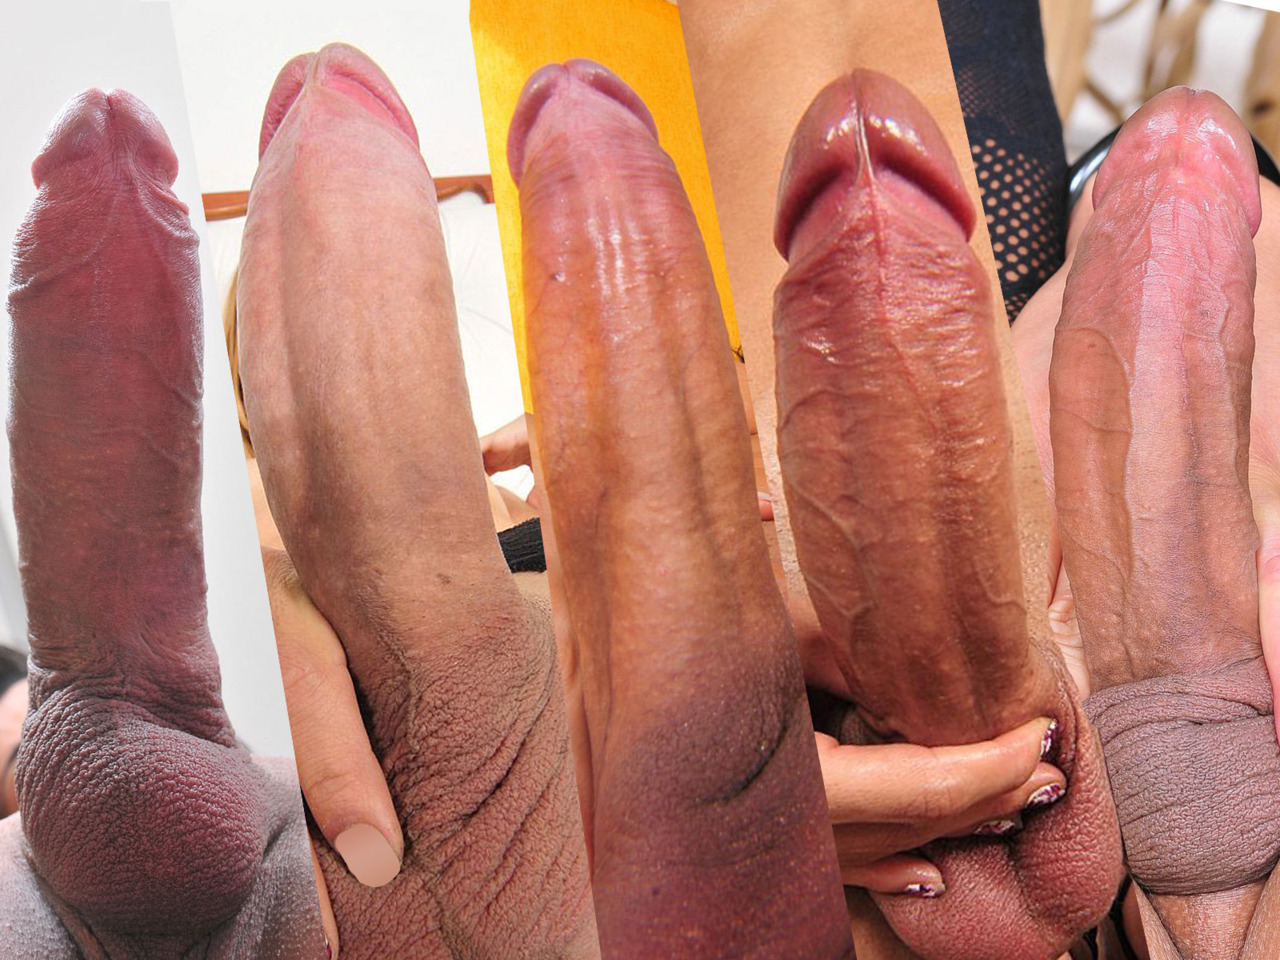 Beautiful hard cock dick